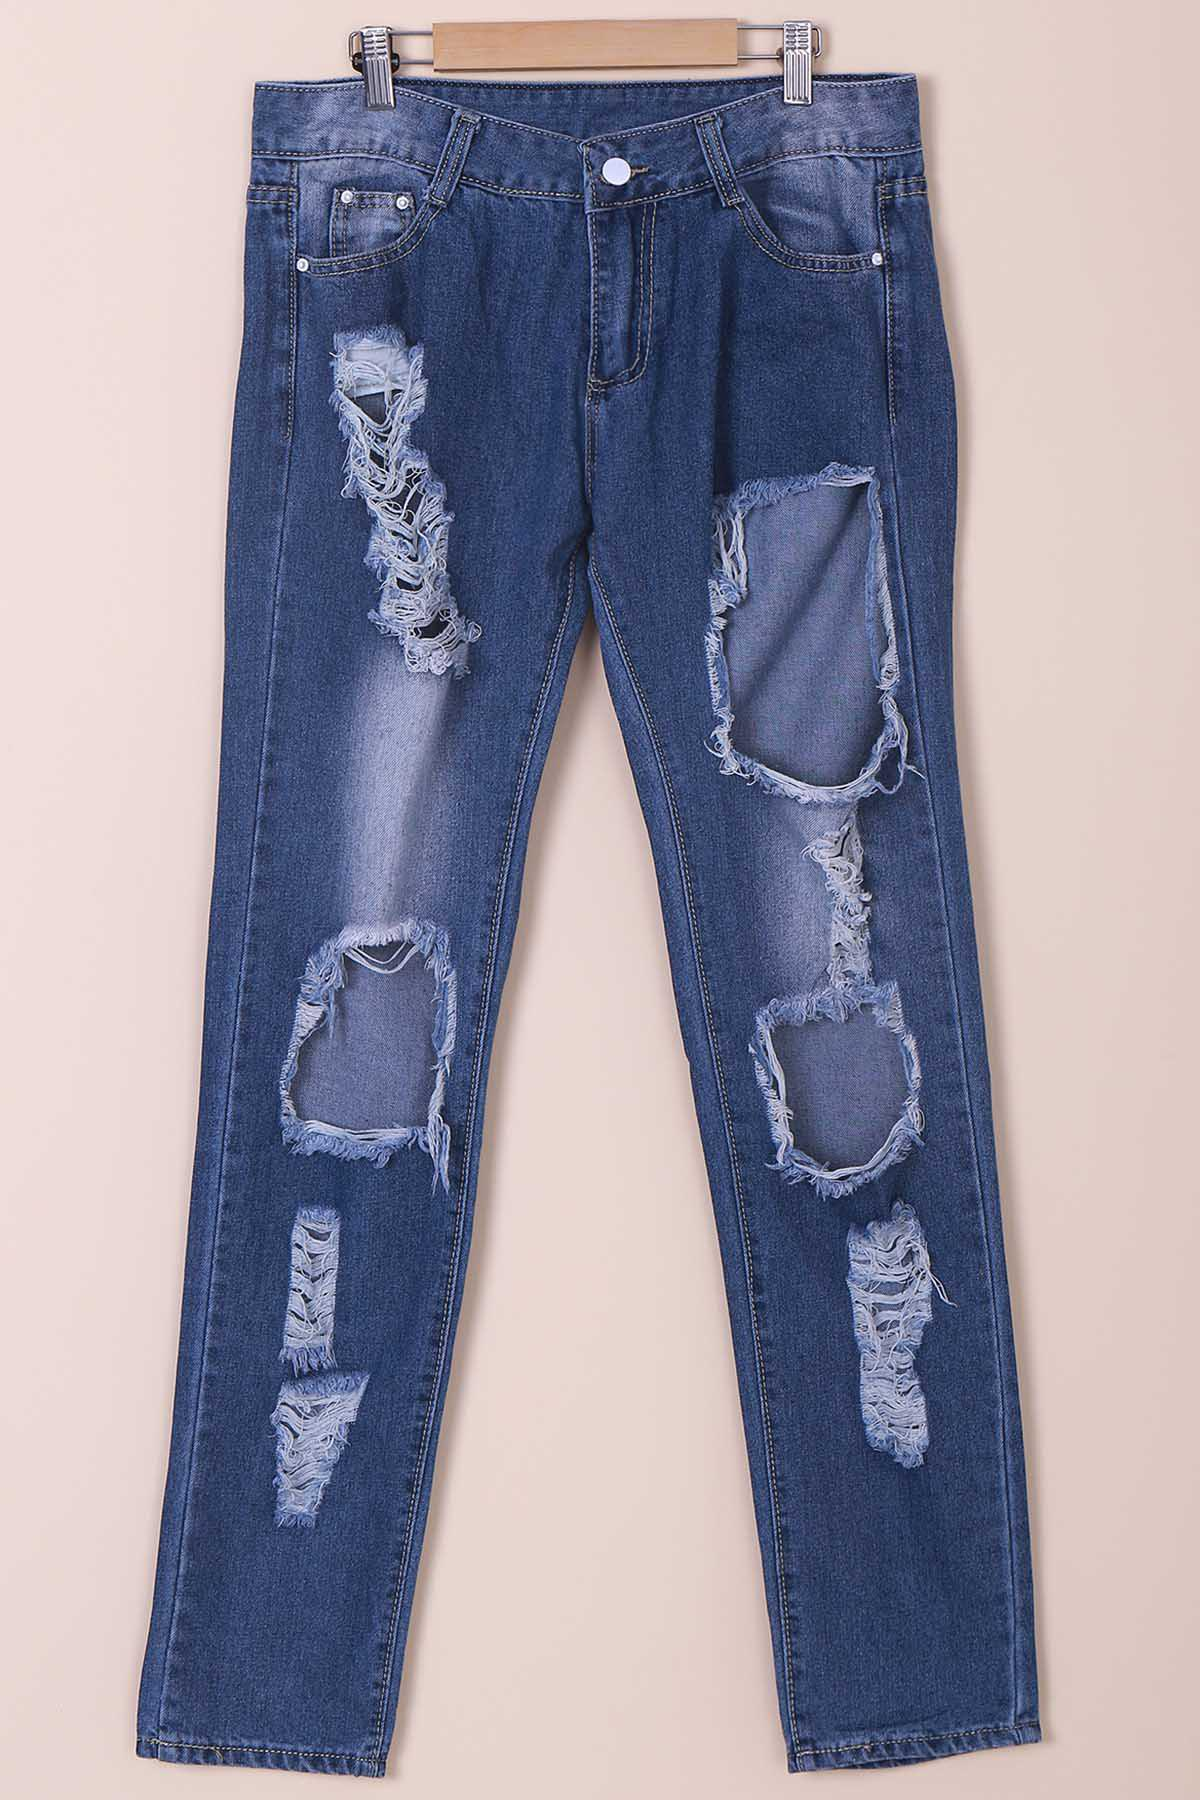 Casual Women's Mid-Waisted Destroy Wash Ripped Jeans